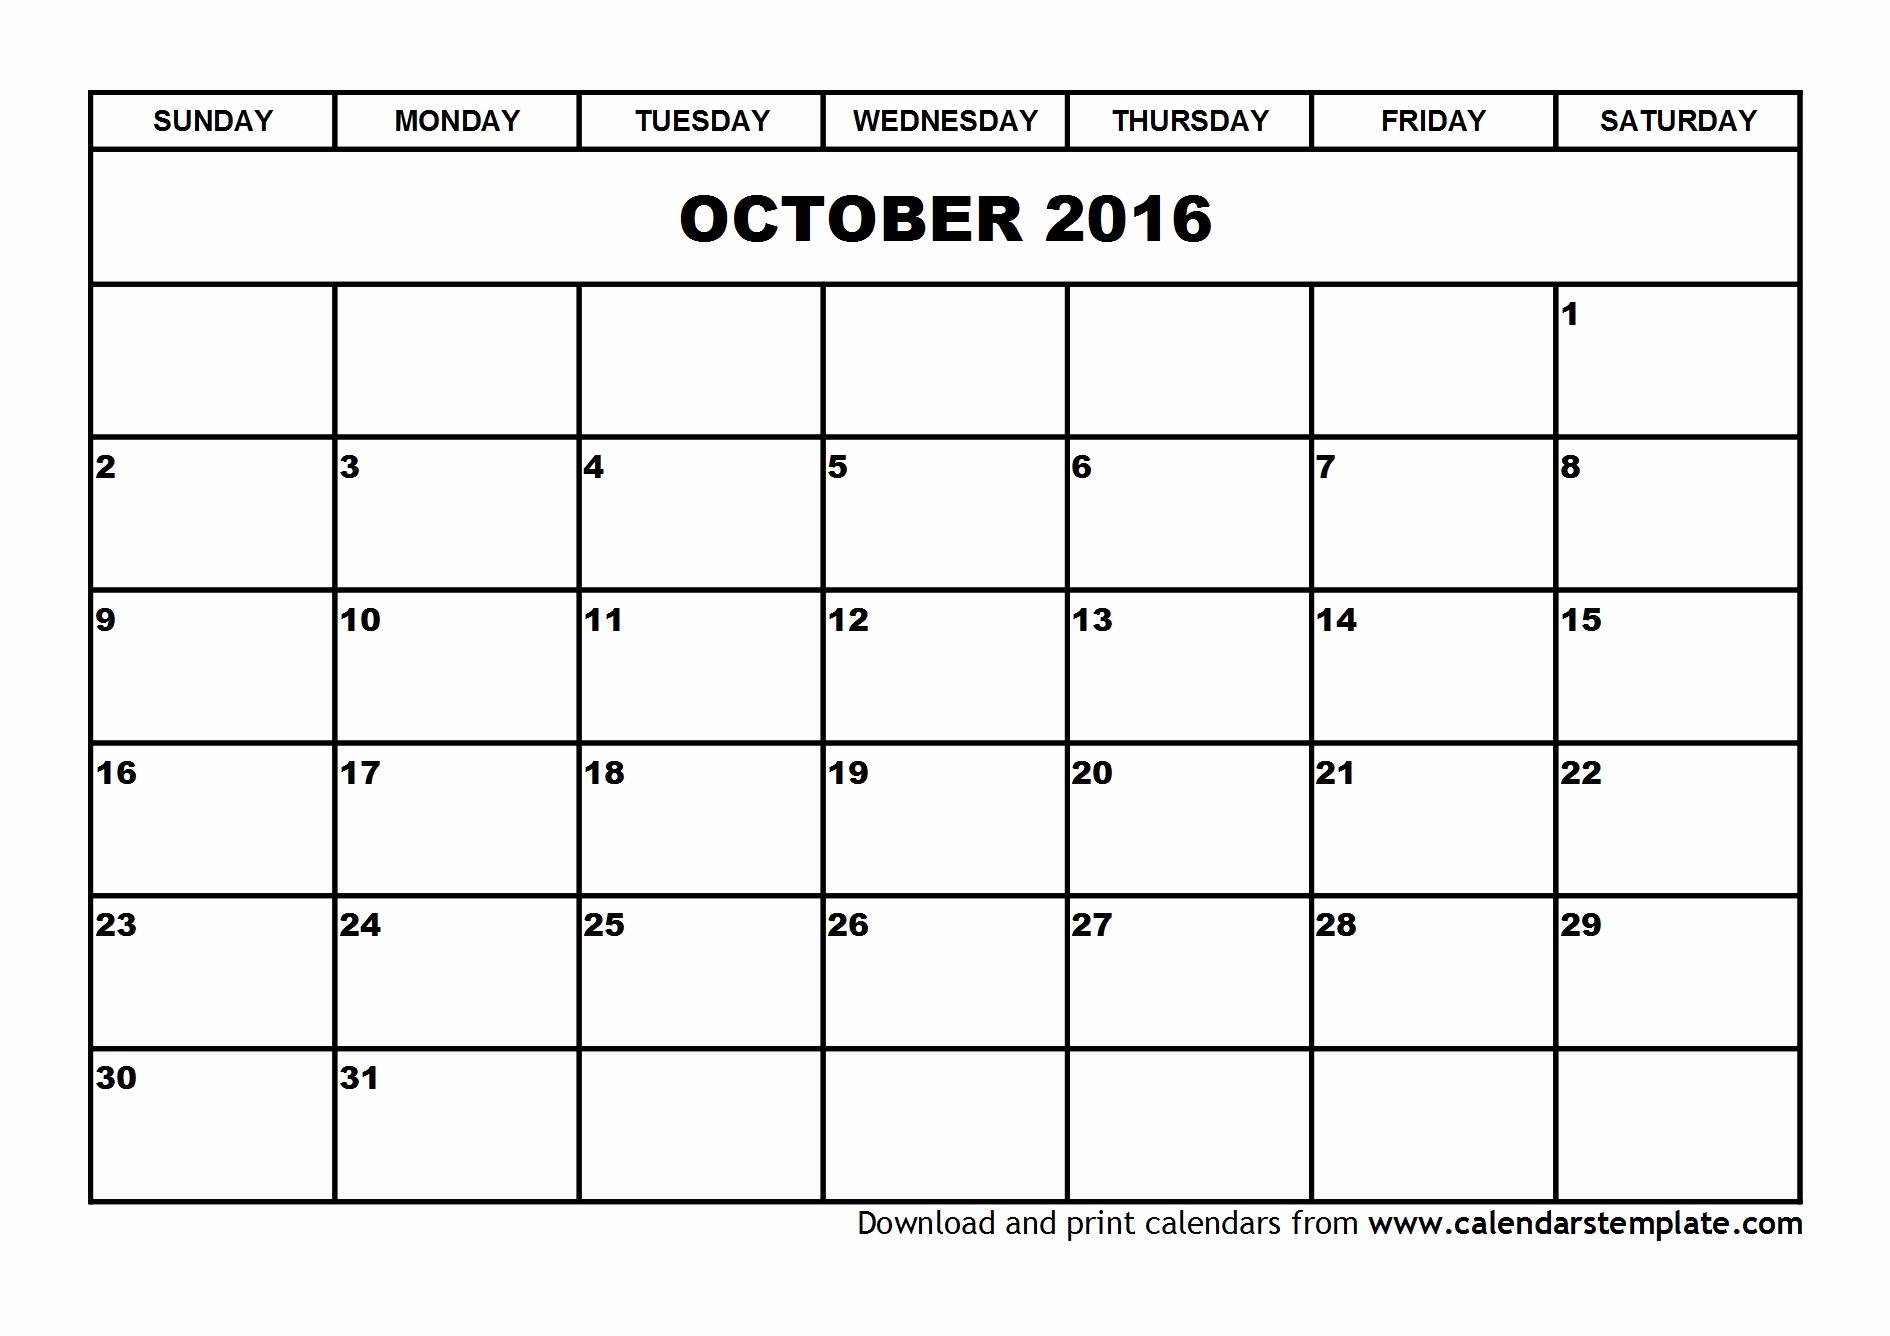 Blank Calendar Template 2016 Unique October 2016 Calendar Template